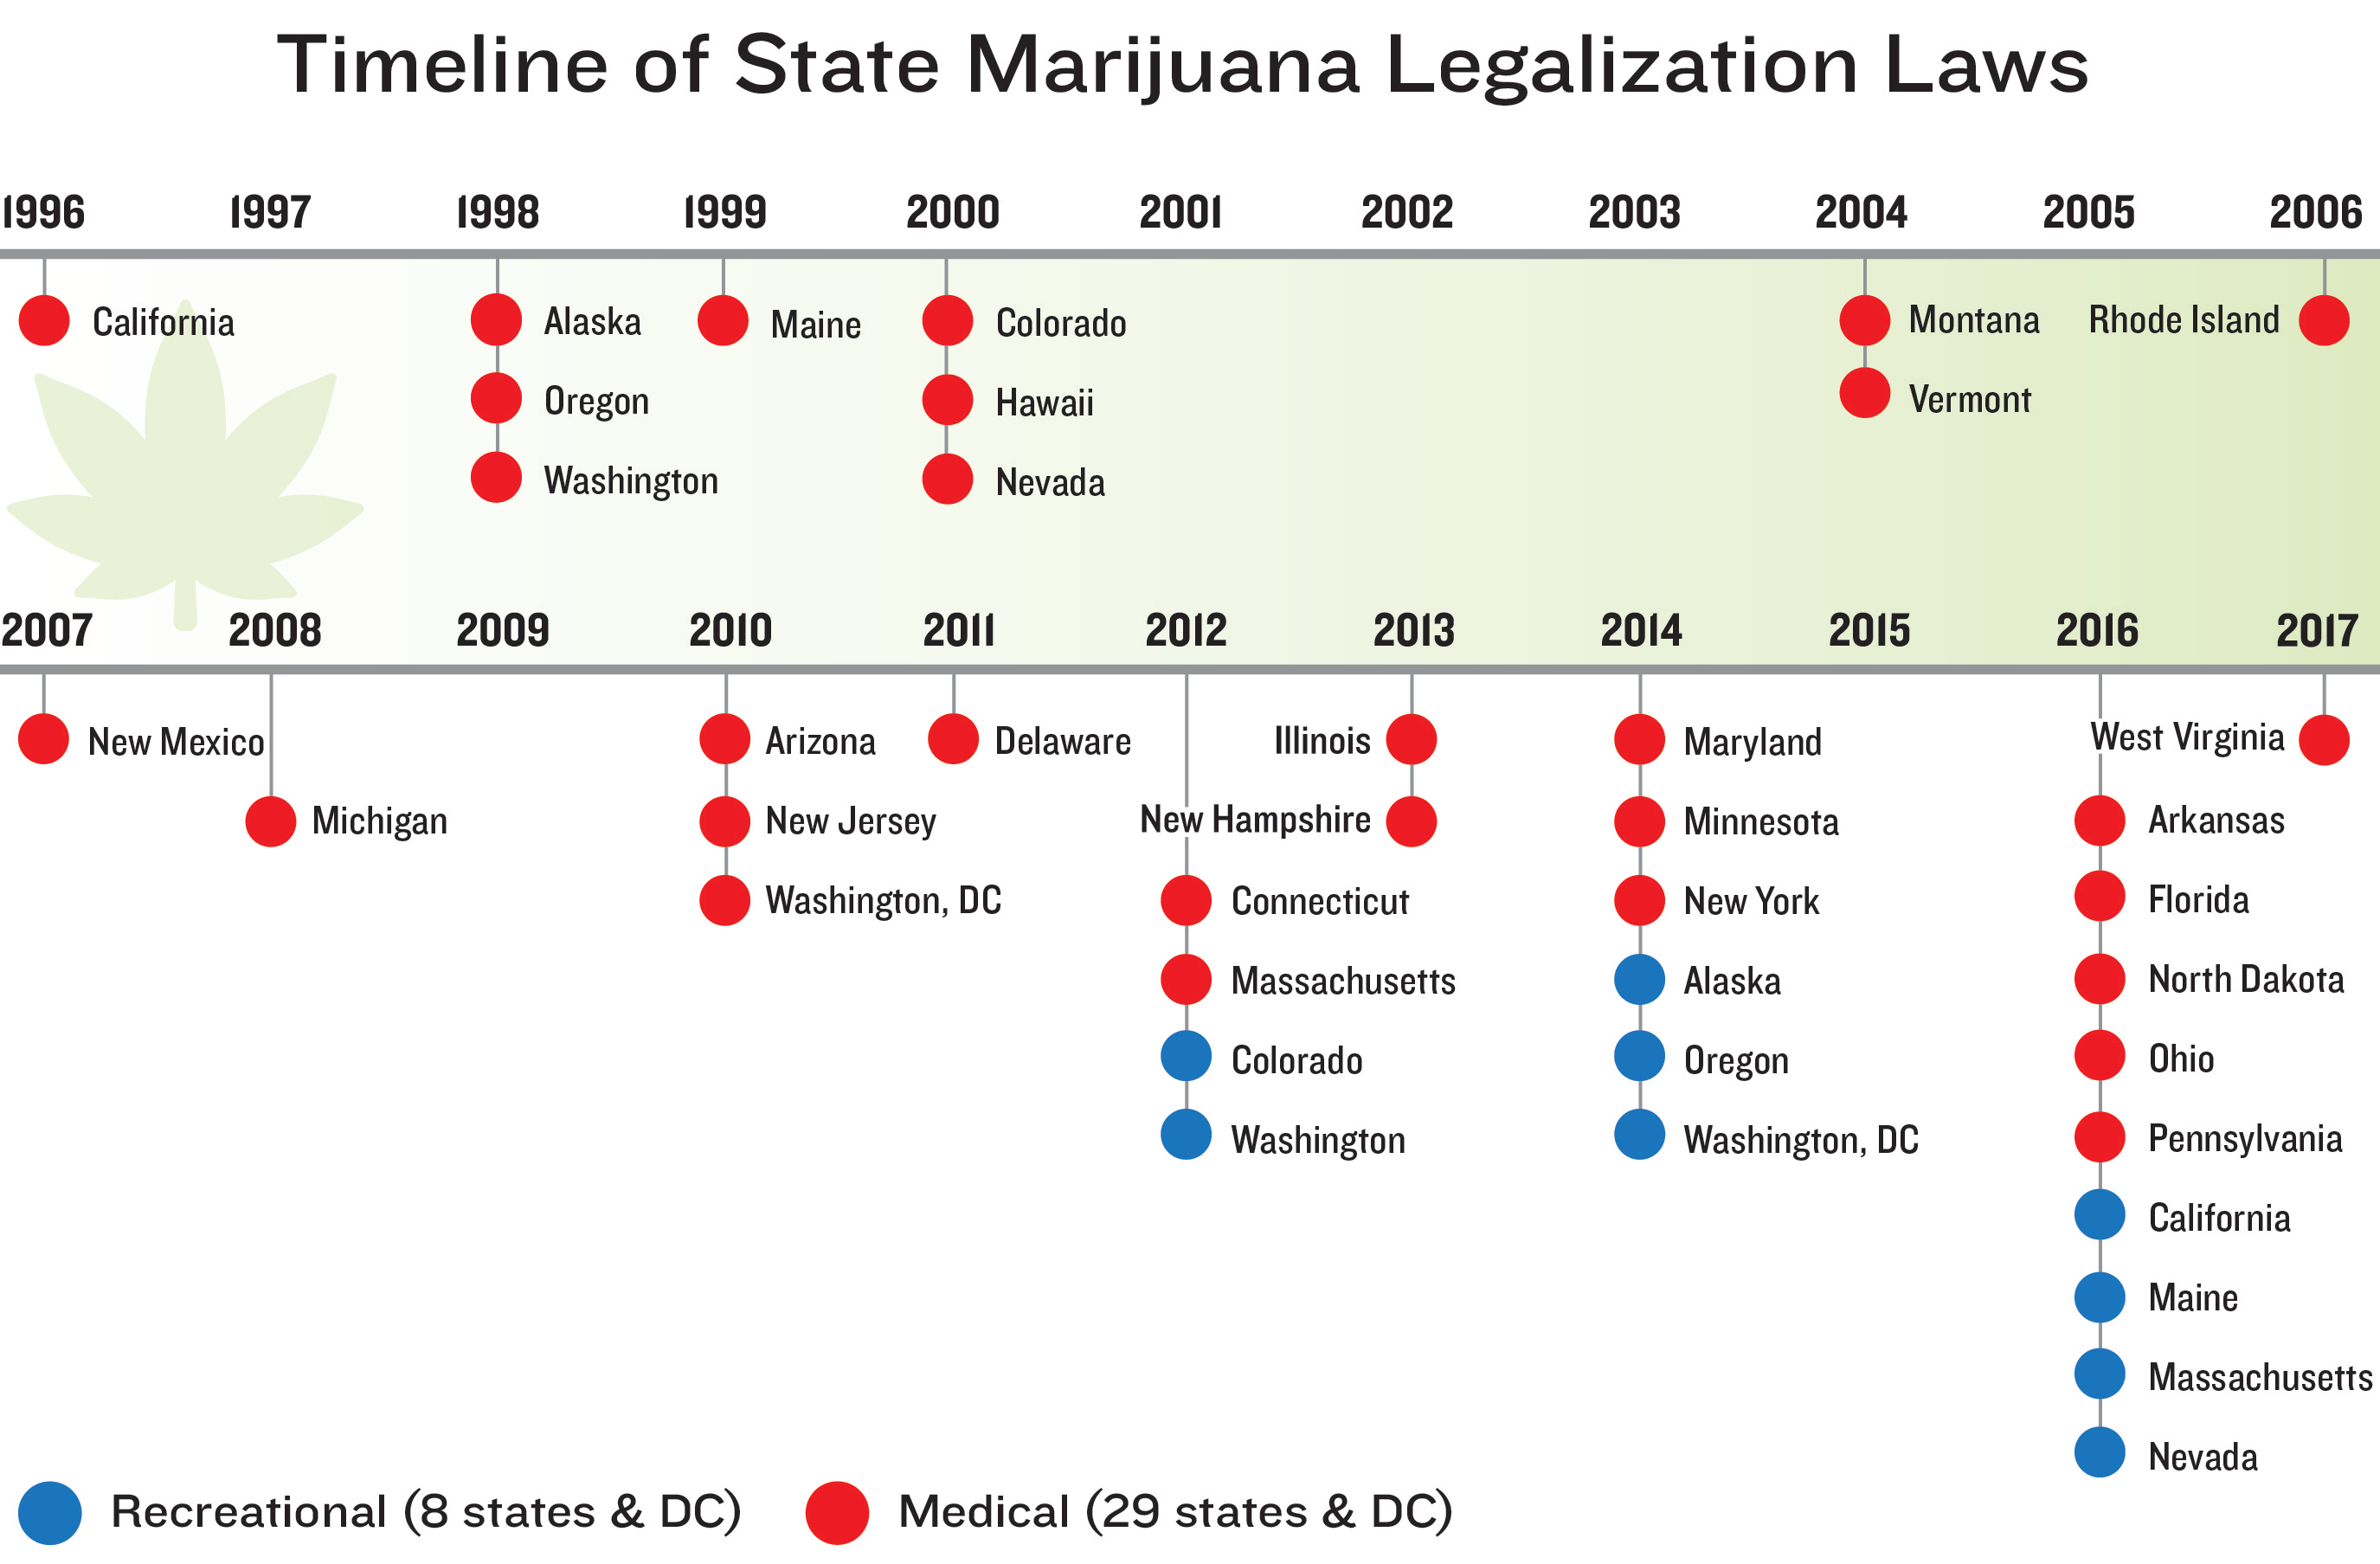 Timeline of State Marijuana Legalization Laws